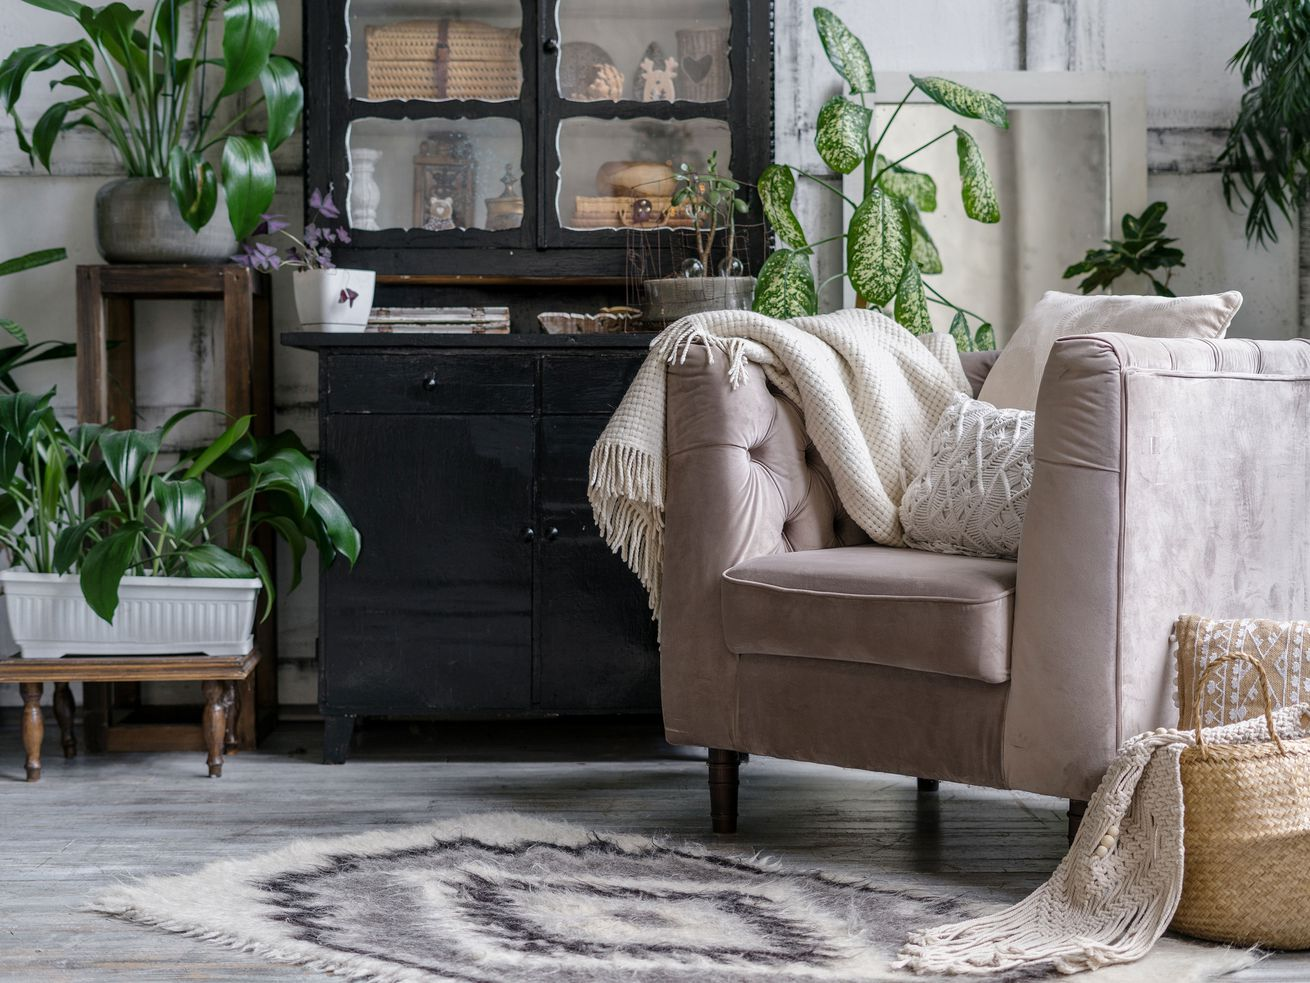 A living room filled with houseplants and a cozy chair.